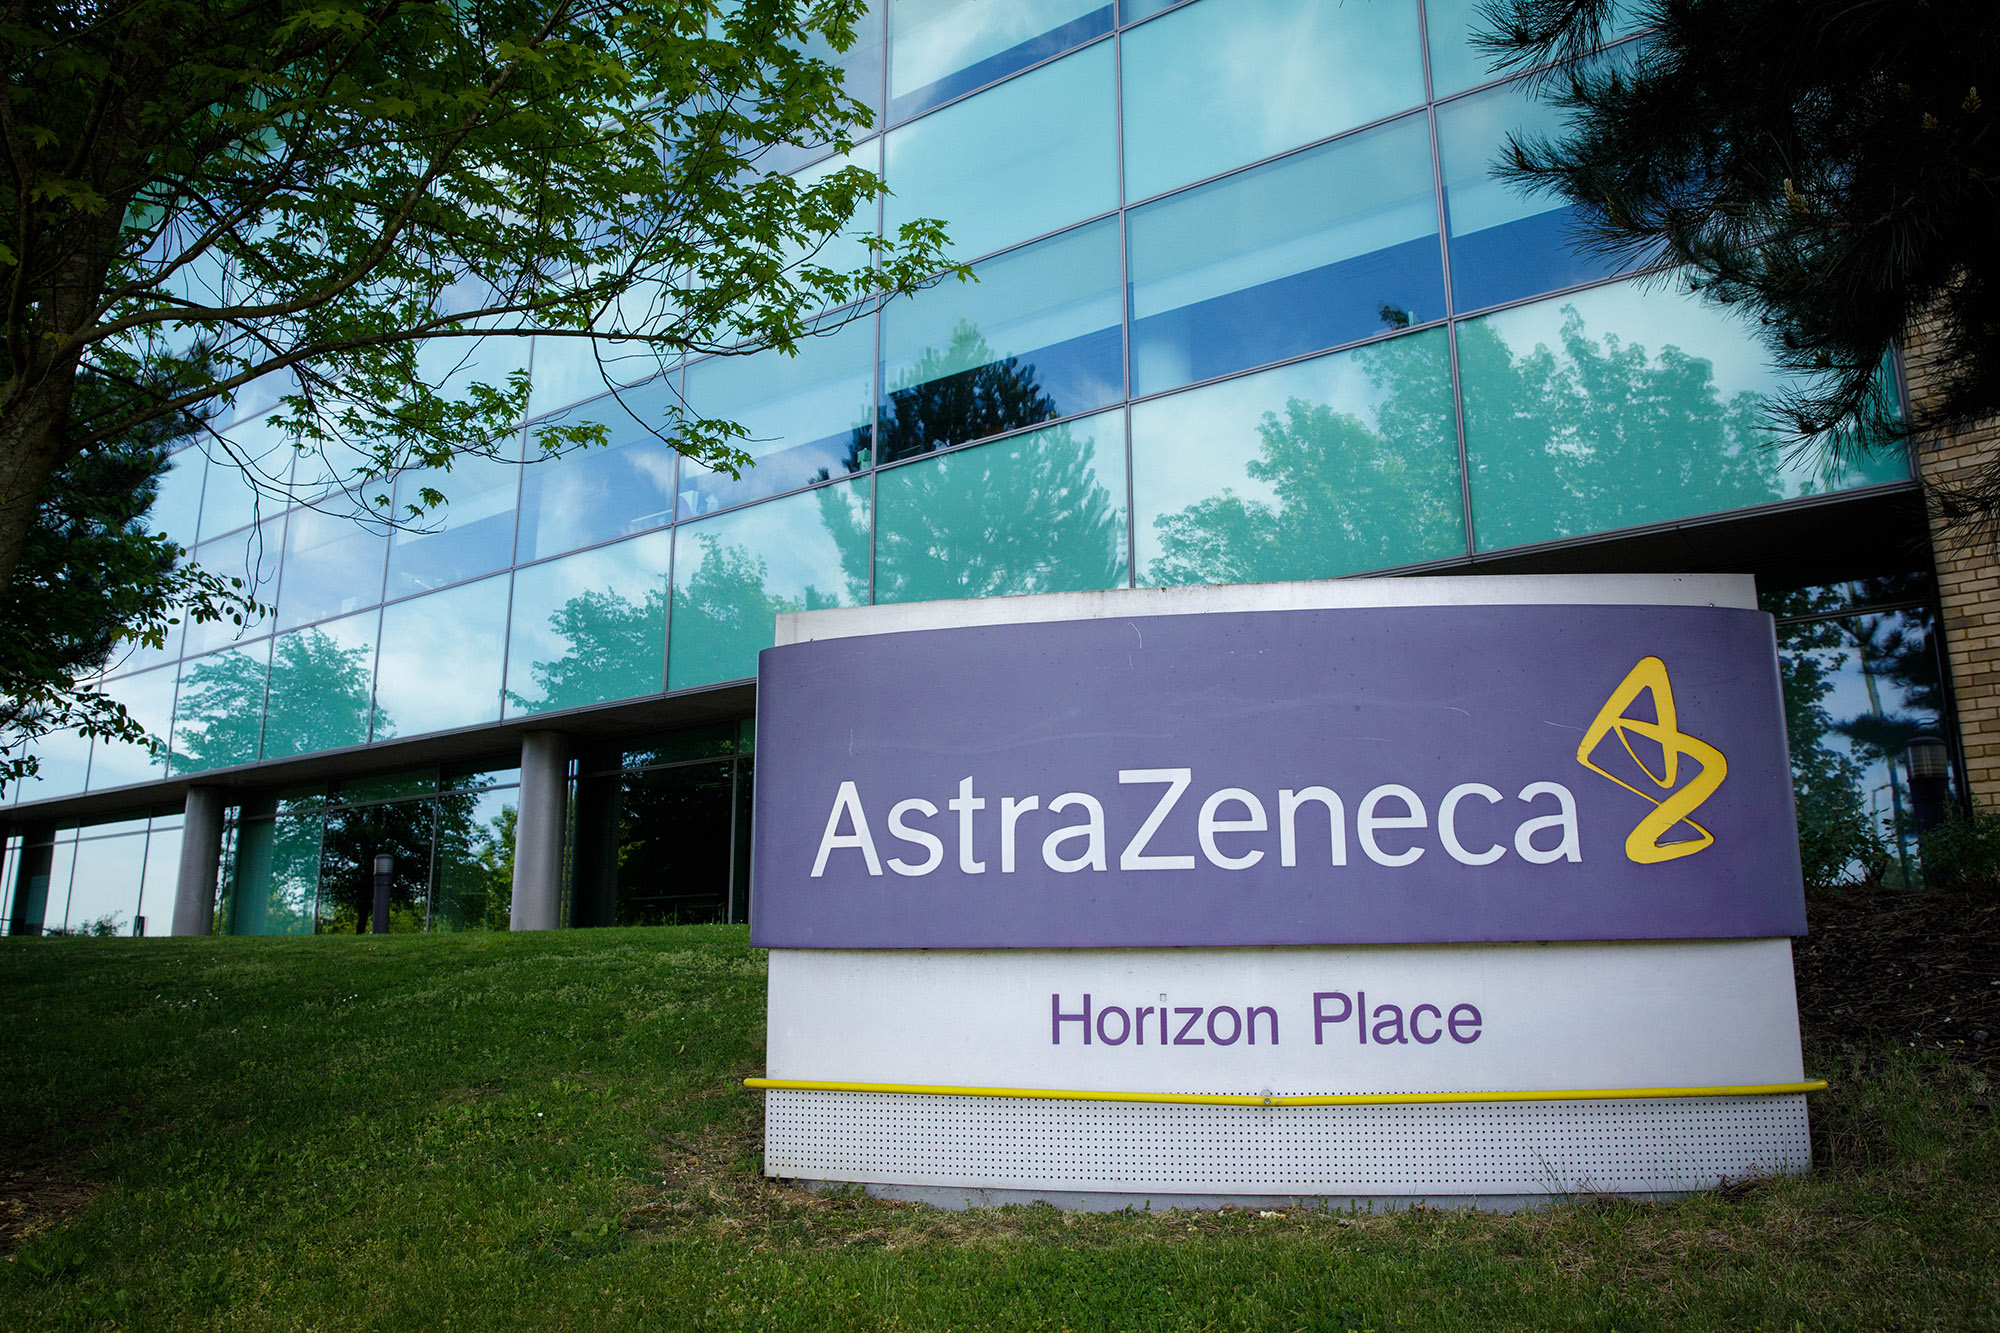 AstraZeneca's building in Luton, England on May 18.